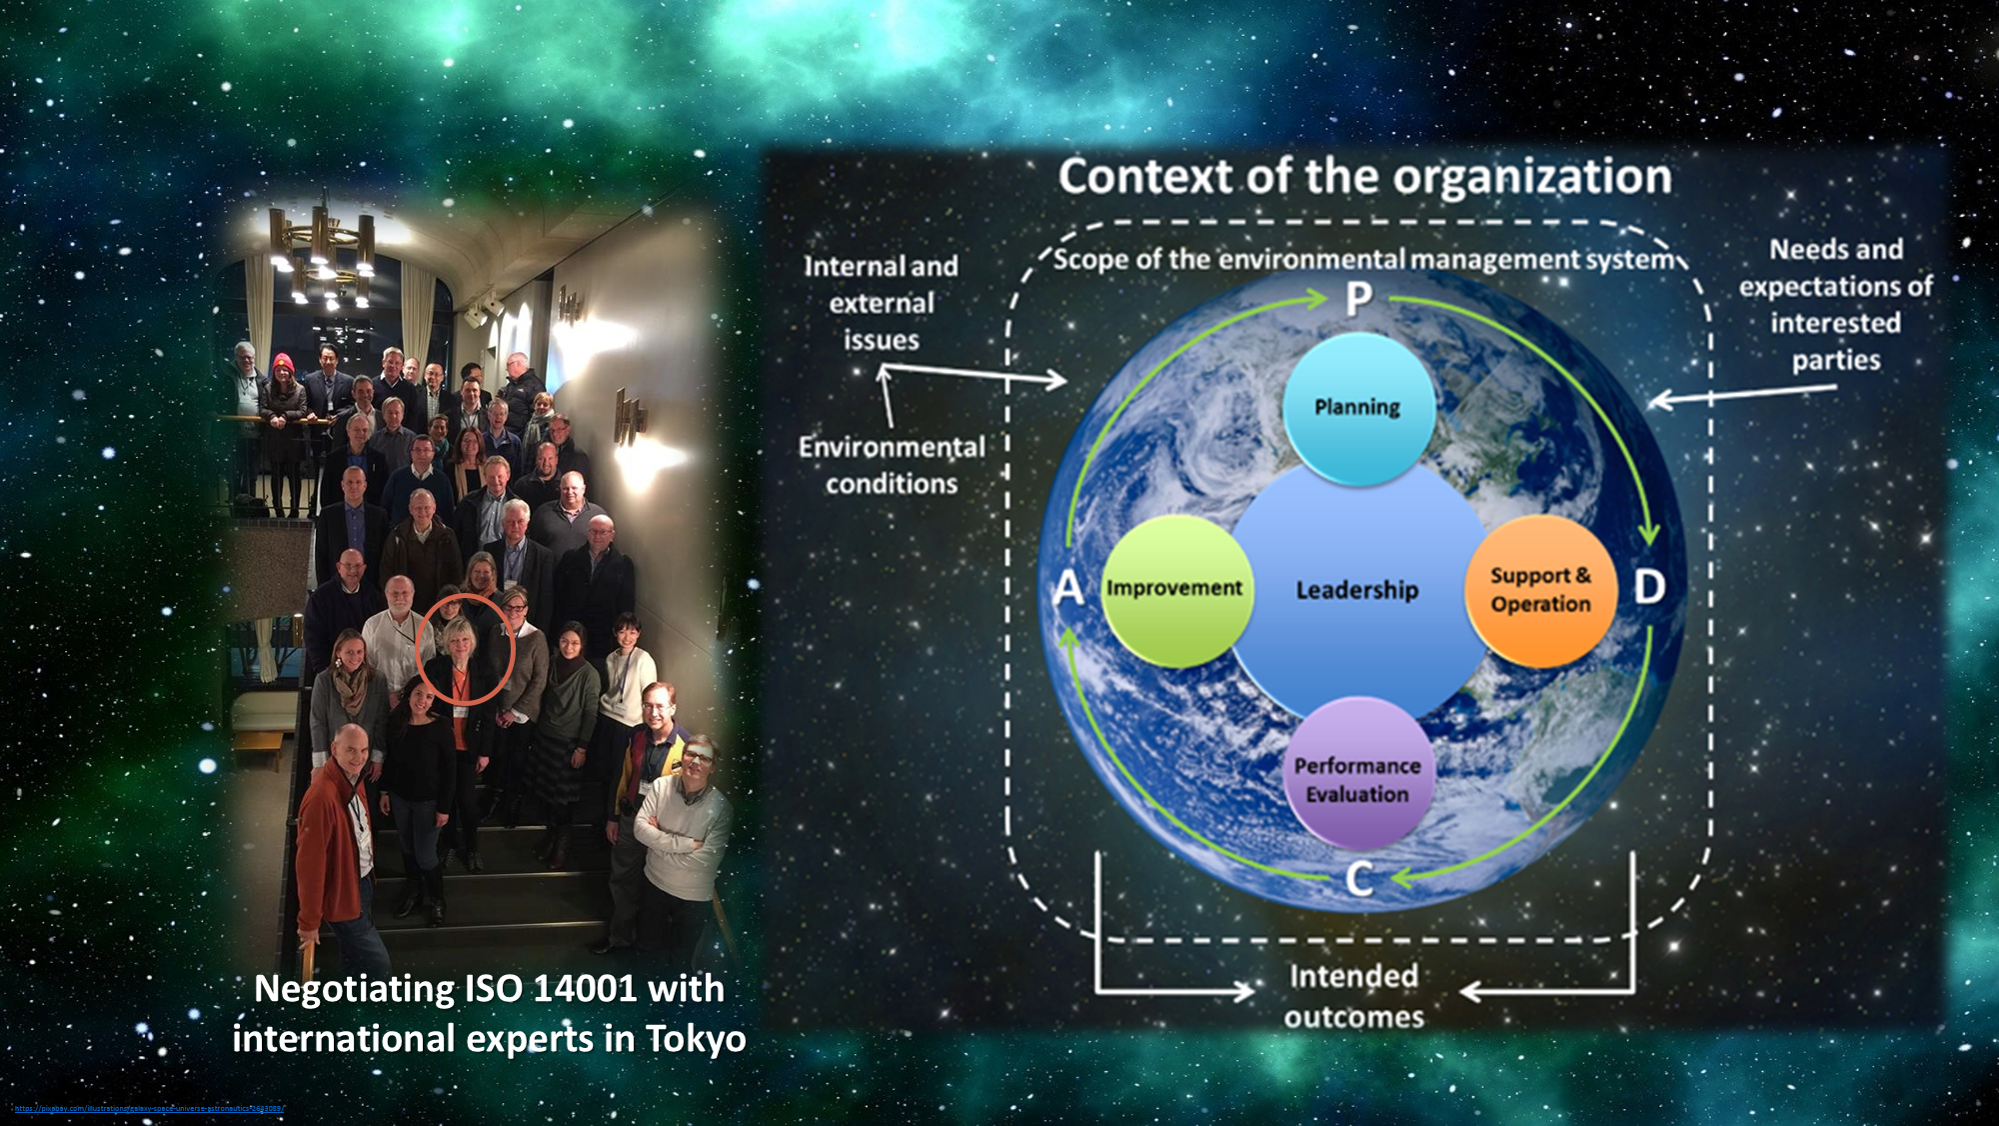 Negotiating ISO 14001 with international experts in Tokyo